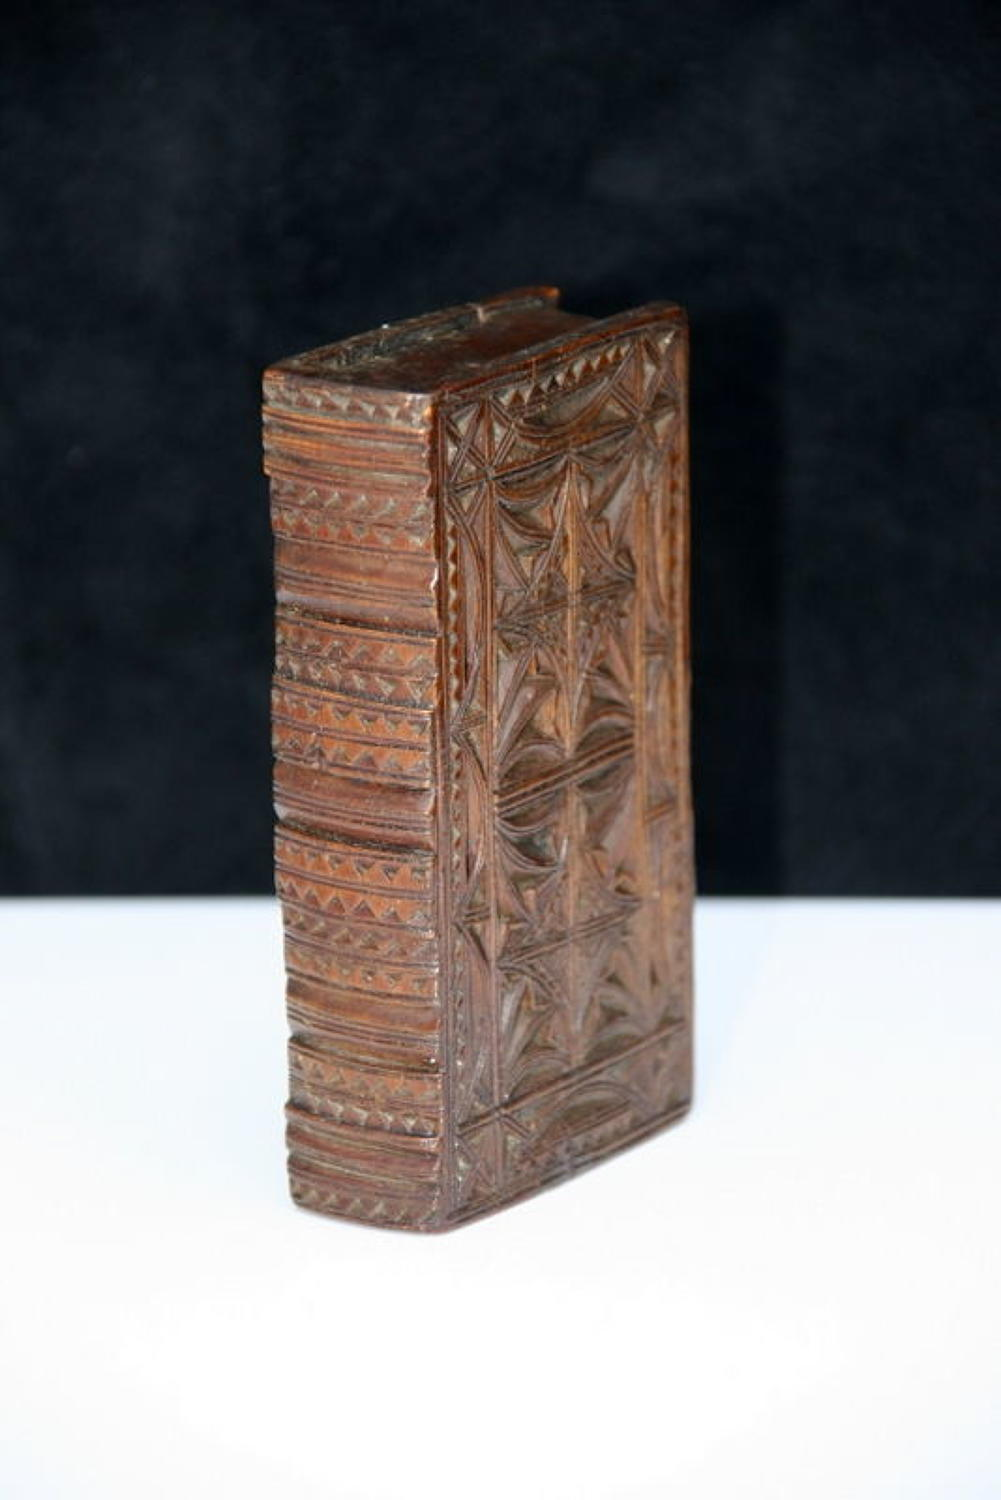 Treen 18th century Chip carved book box snuff box